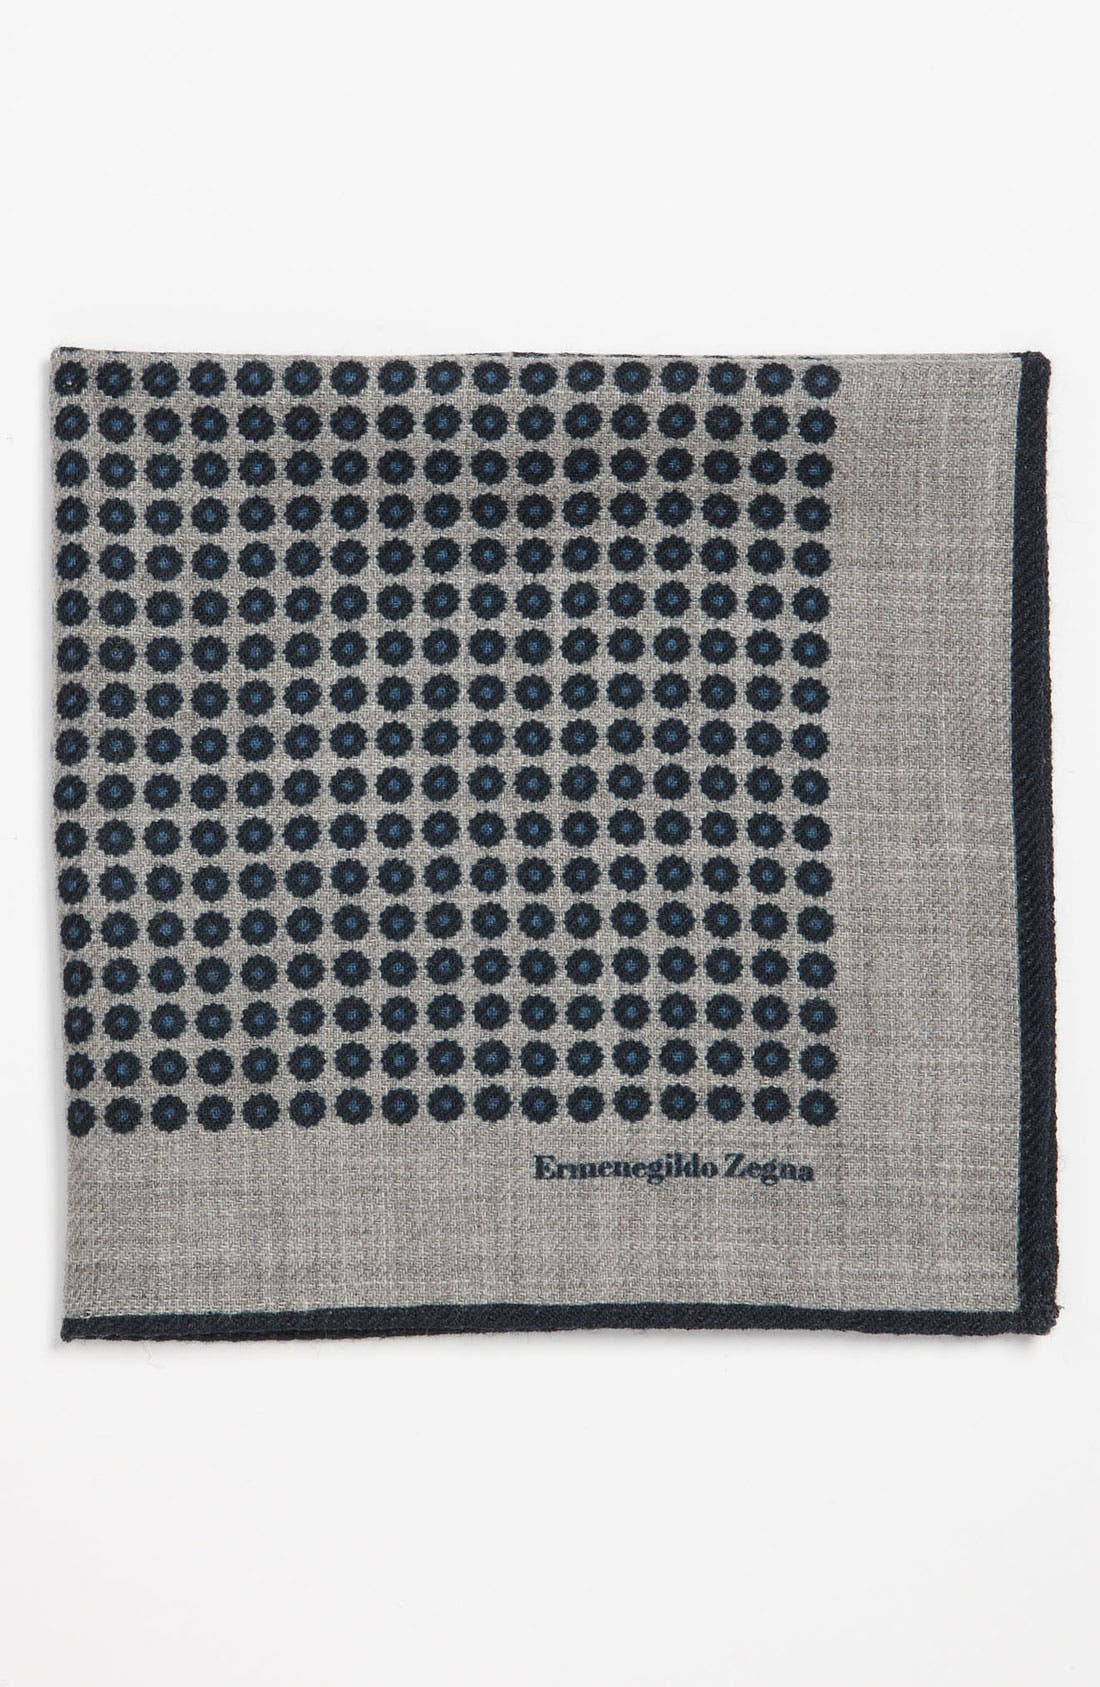 Main Image - Ermenegildo Zegna Wool Pocket Square